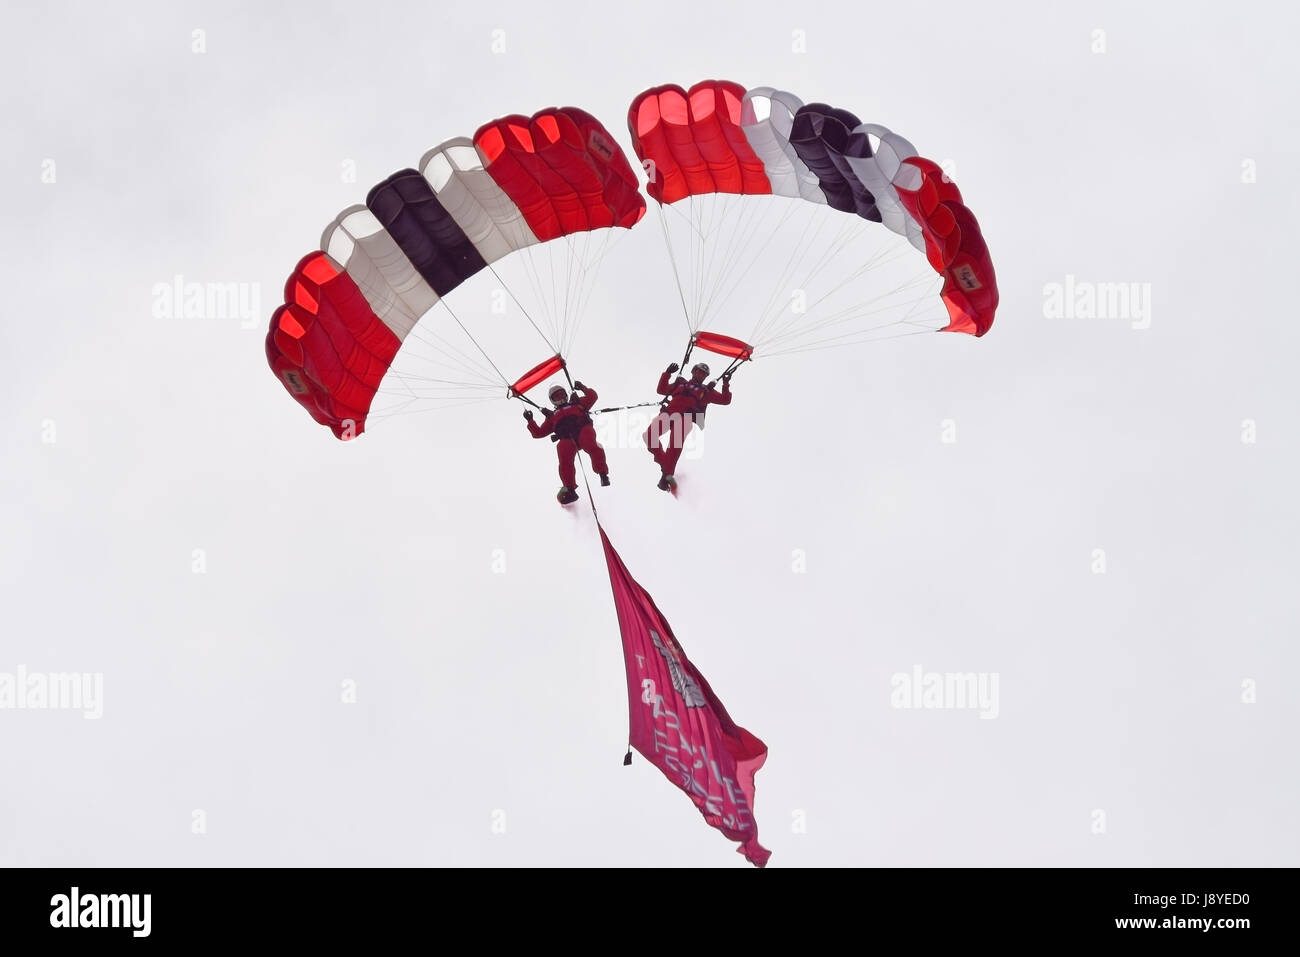 Two of the The Red Devils parachute team joined together with flag. Space for copy - Stock Image